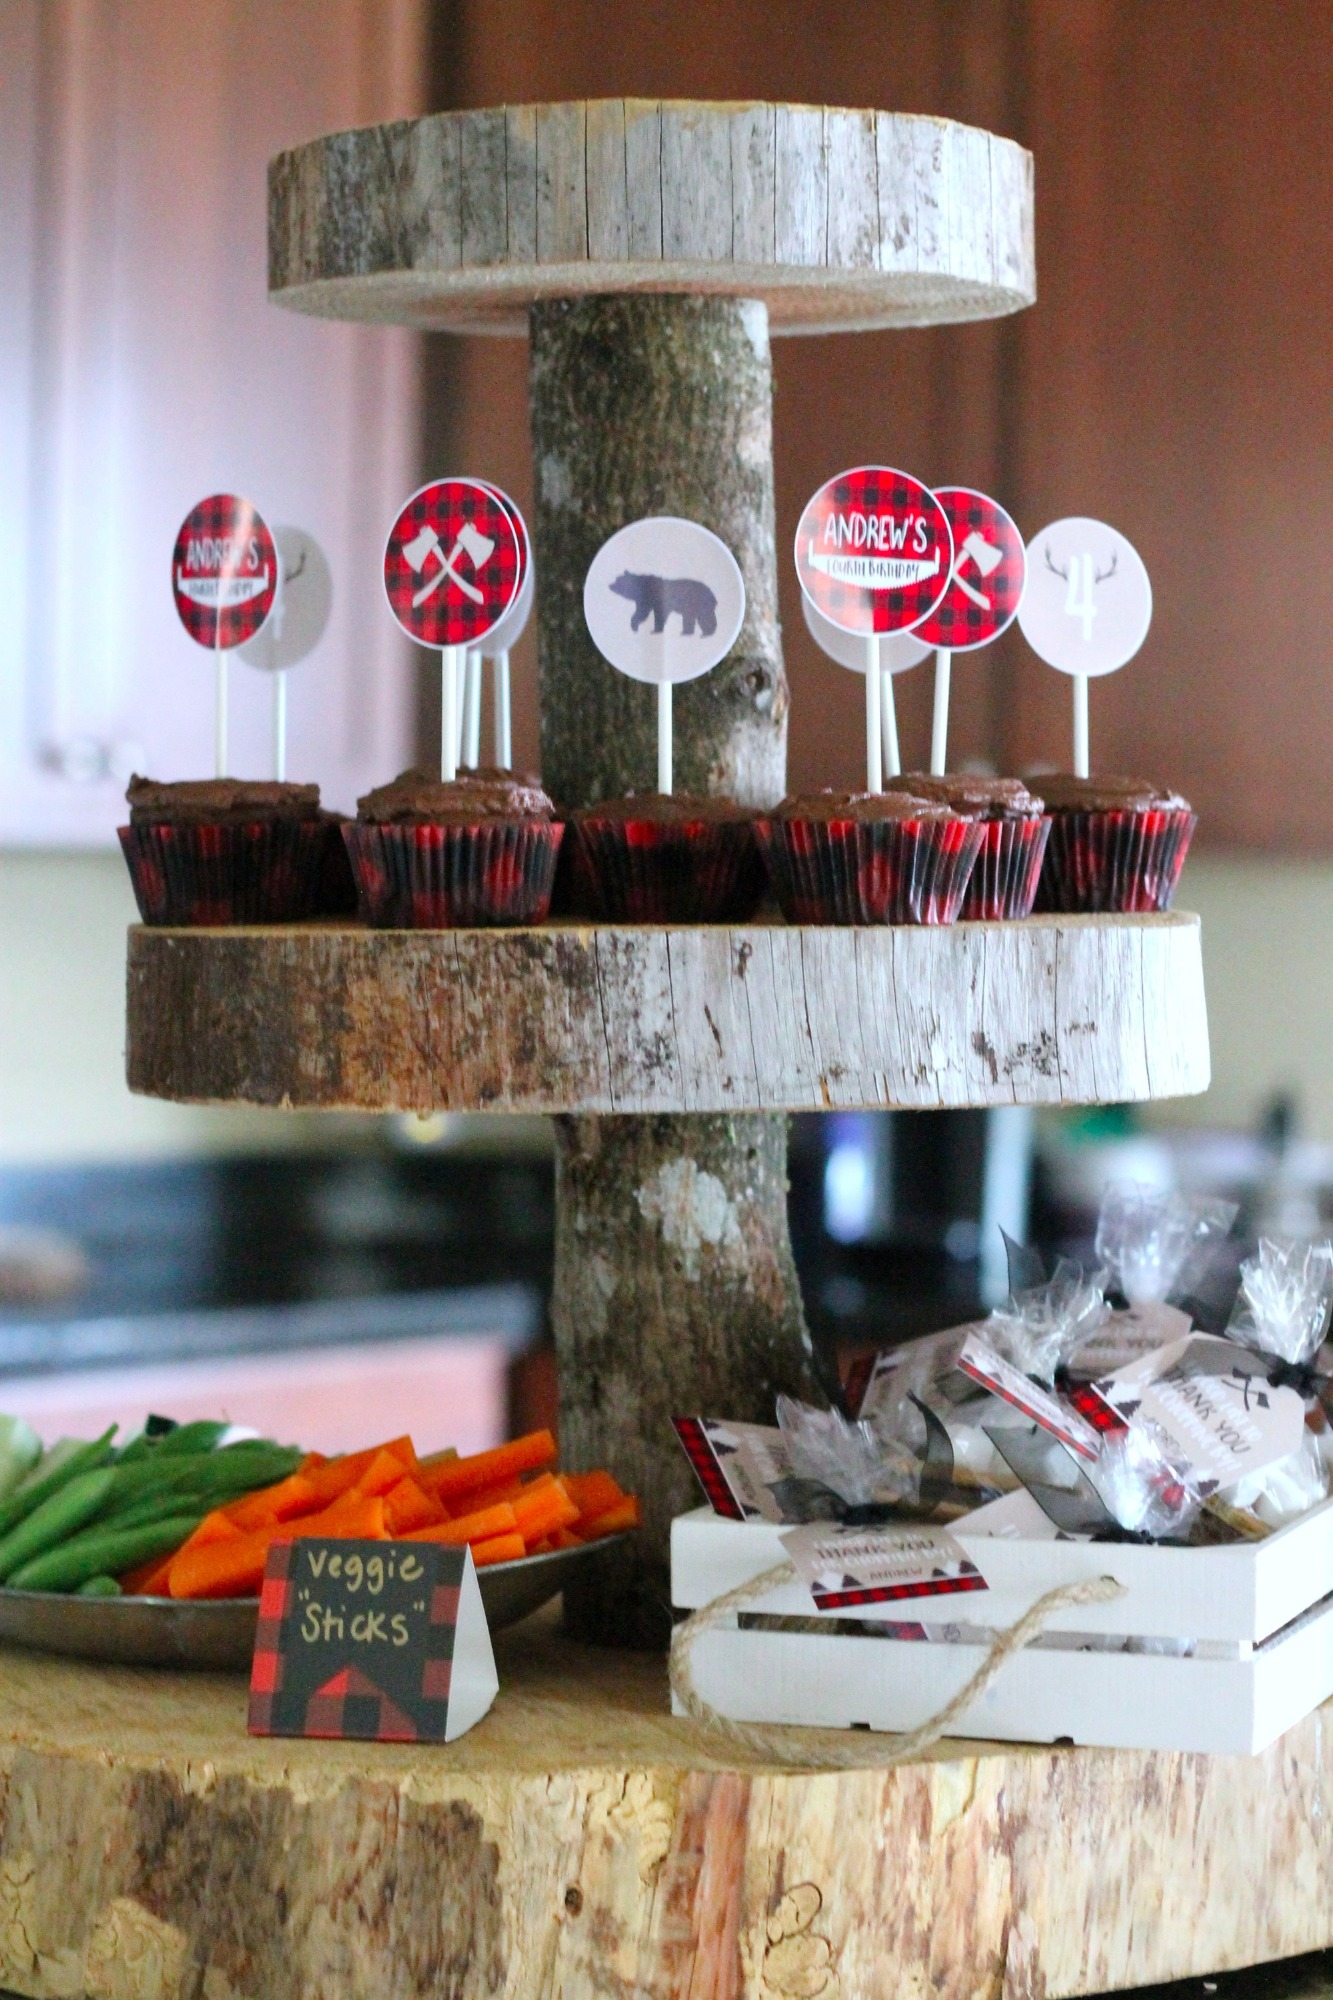 Cupcakes and Veggie Sticks on Food Table for Lumberjack Party by AK Party Studio | Black Twine